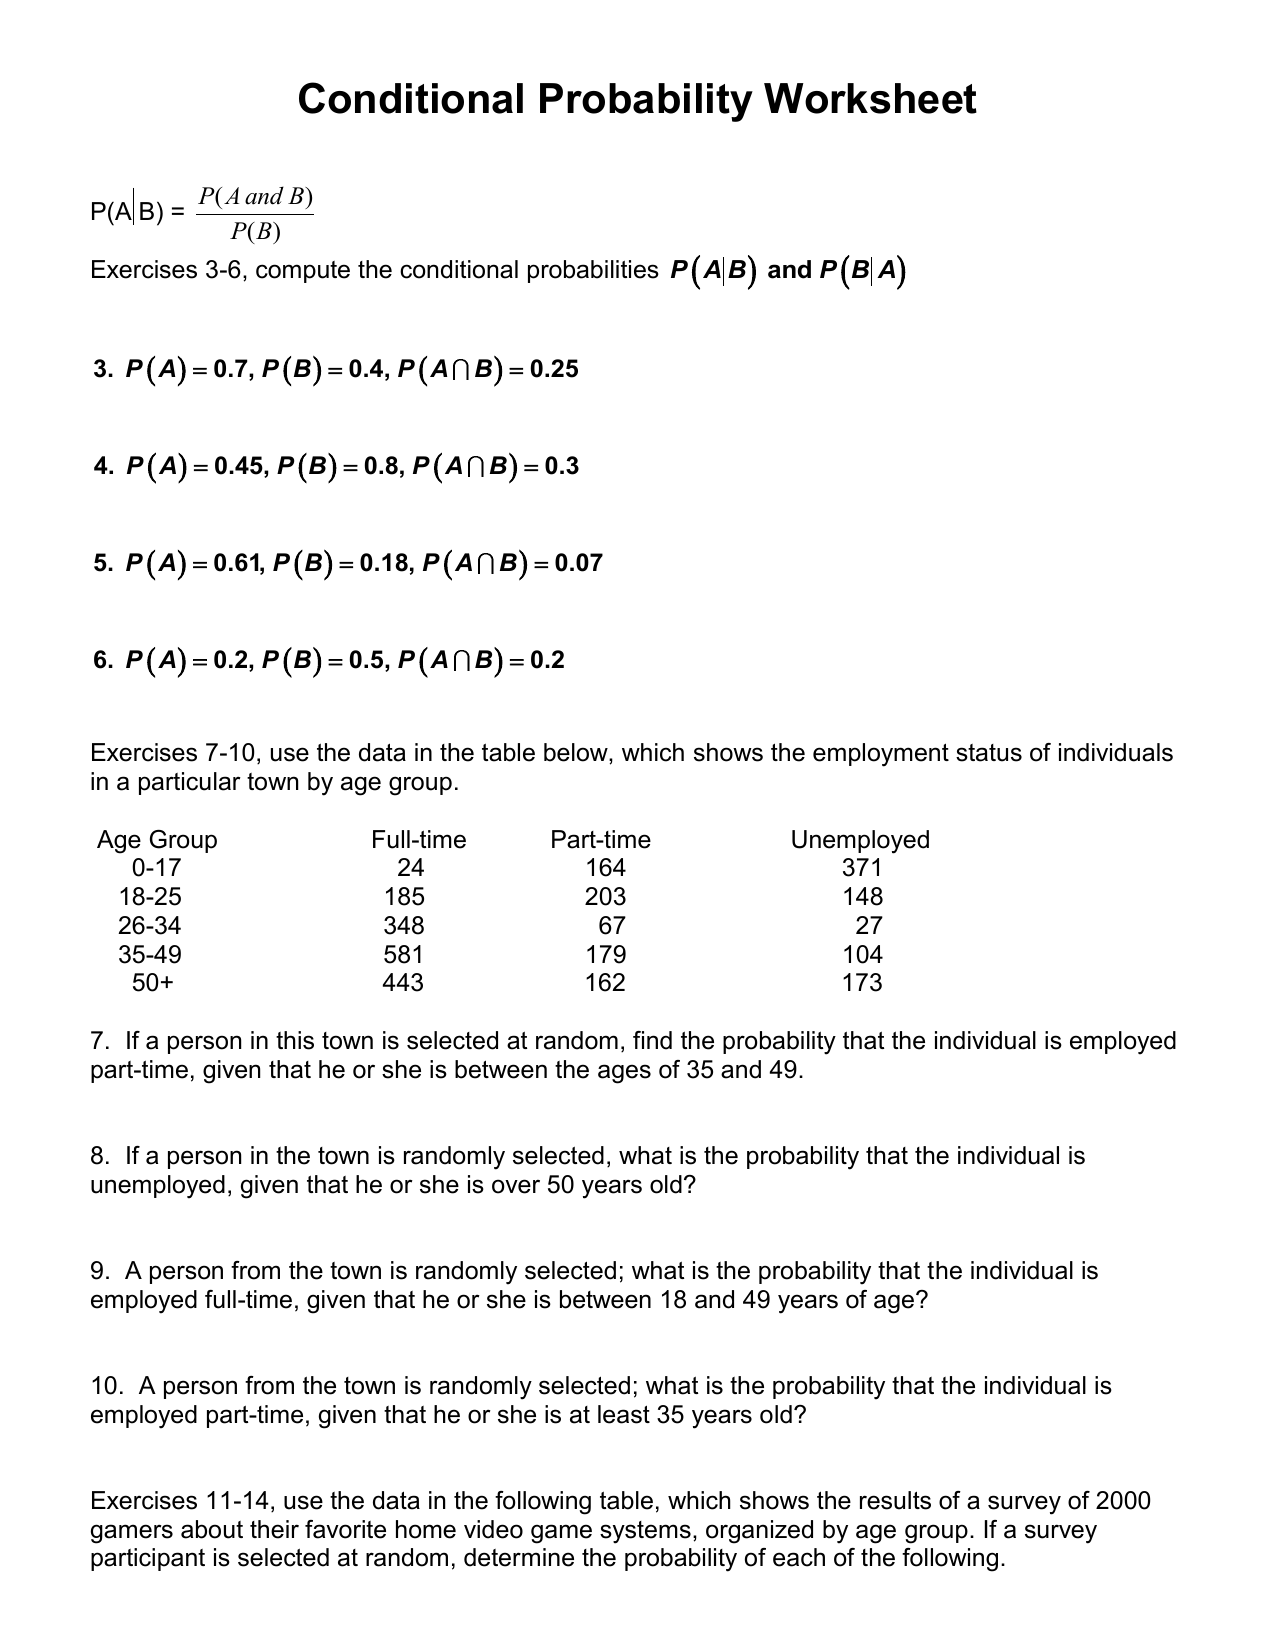 Conditional Probability Worksheet Worksheets For School - Leafsea